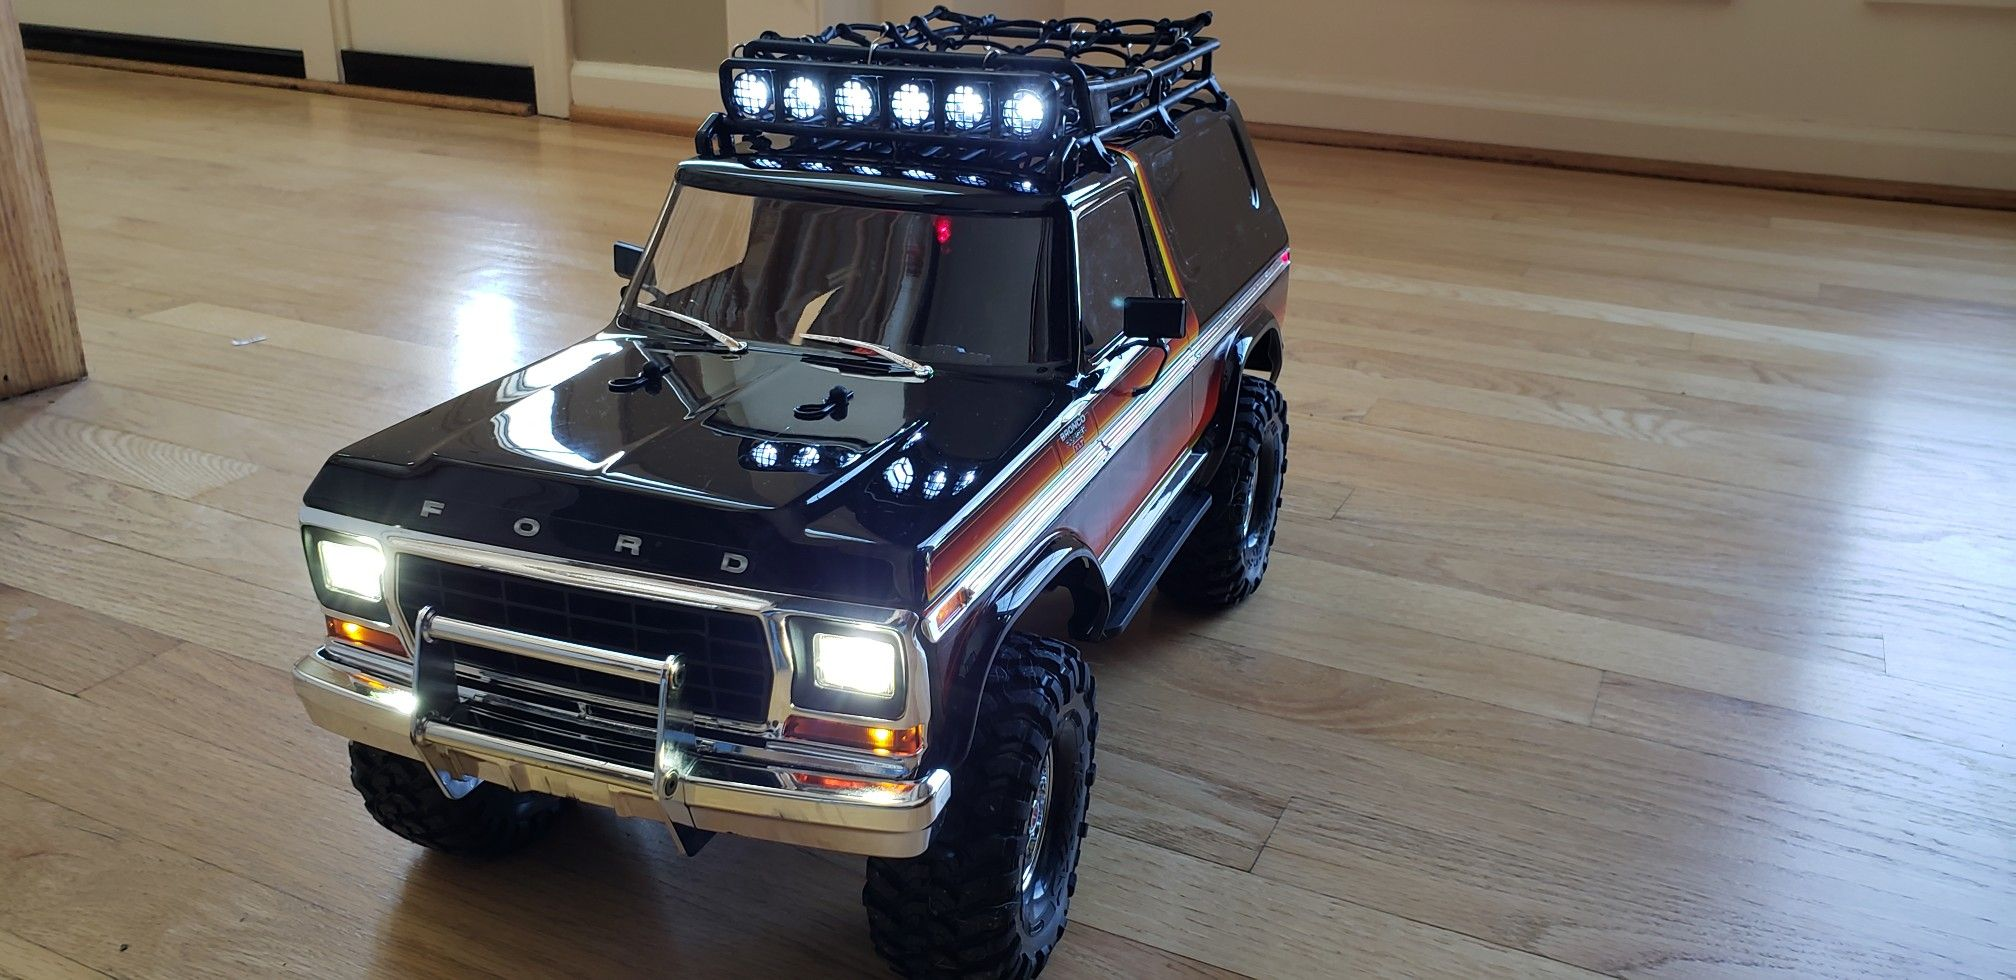 Got The Roof Rack And Cargo Net Installed Today With 1 10 Accessories On Thier Way Going Super Scale On This Traxxas Trx Traxxas Ford Bronco 1979 Ford Bronco